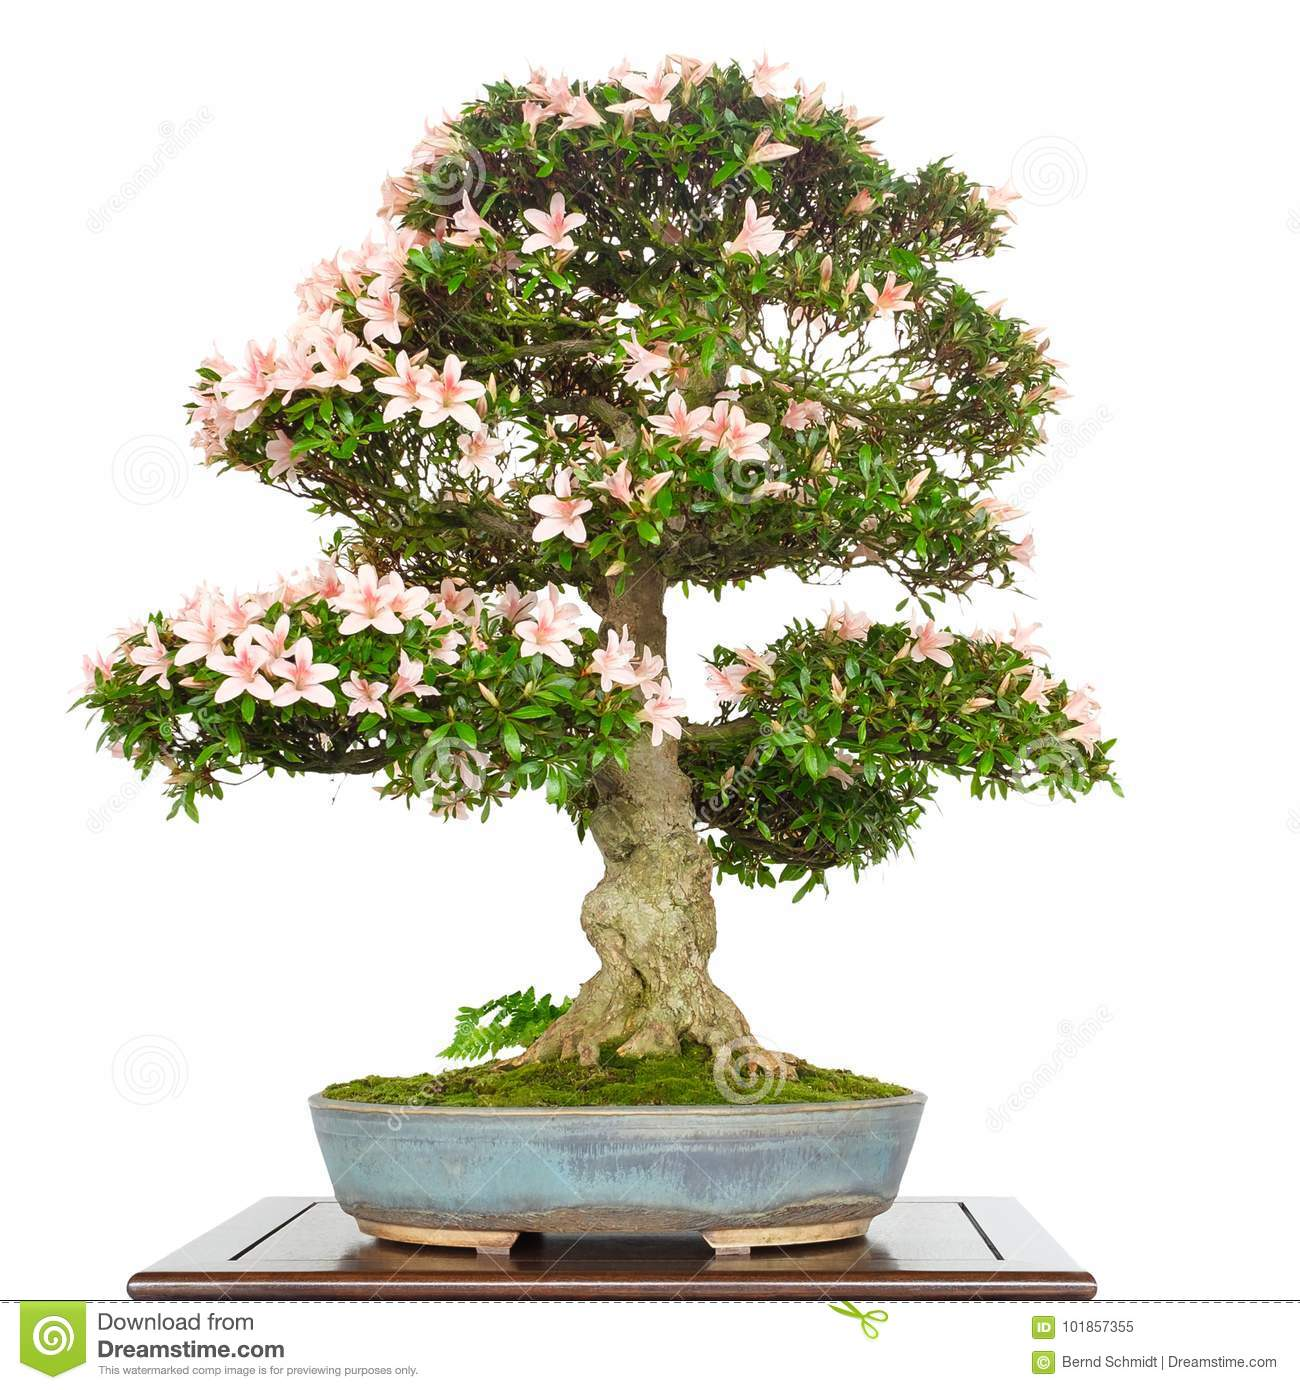 Azalea Rhododendron As Bonsai Tree With Pink Flowers Stock Image